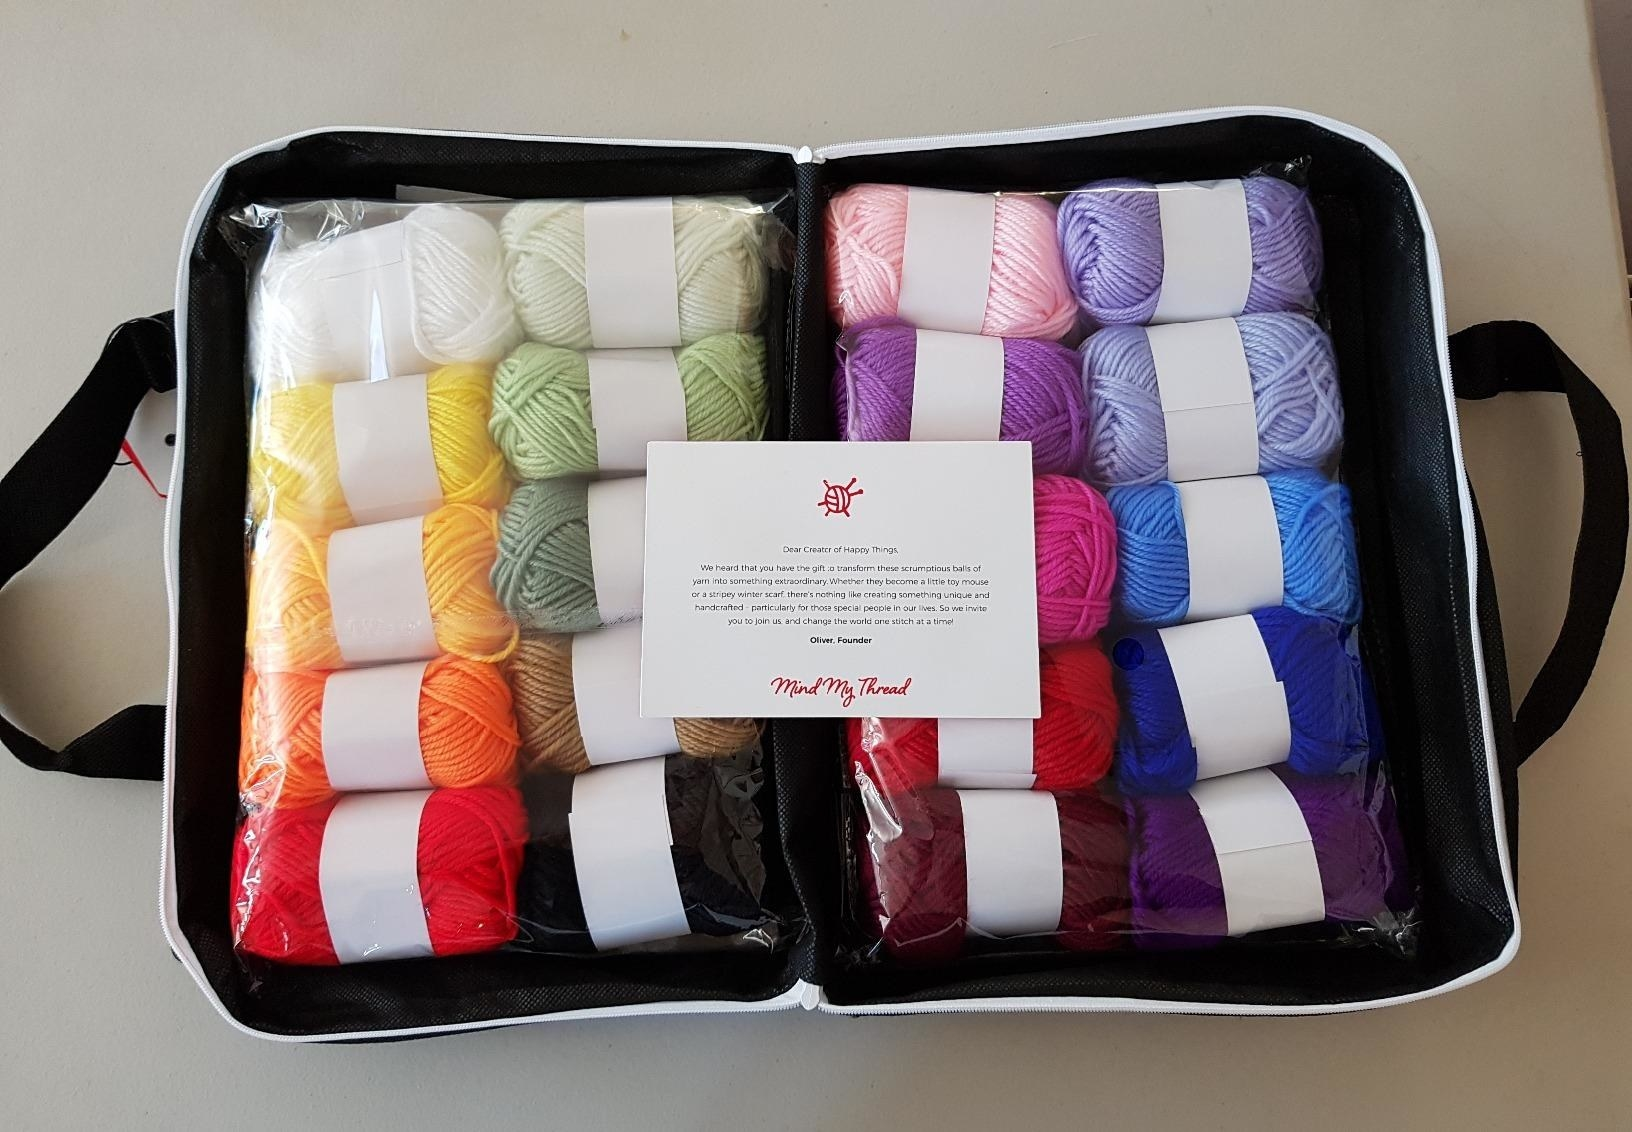 reviewer image of the crochet kit